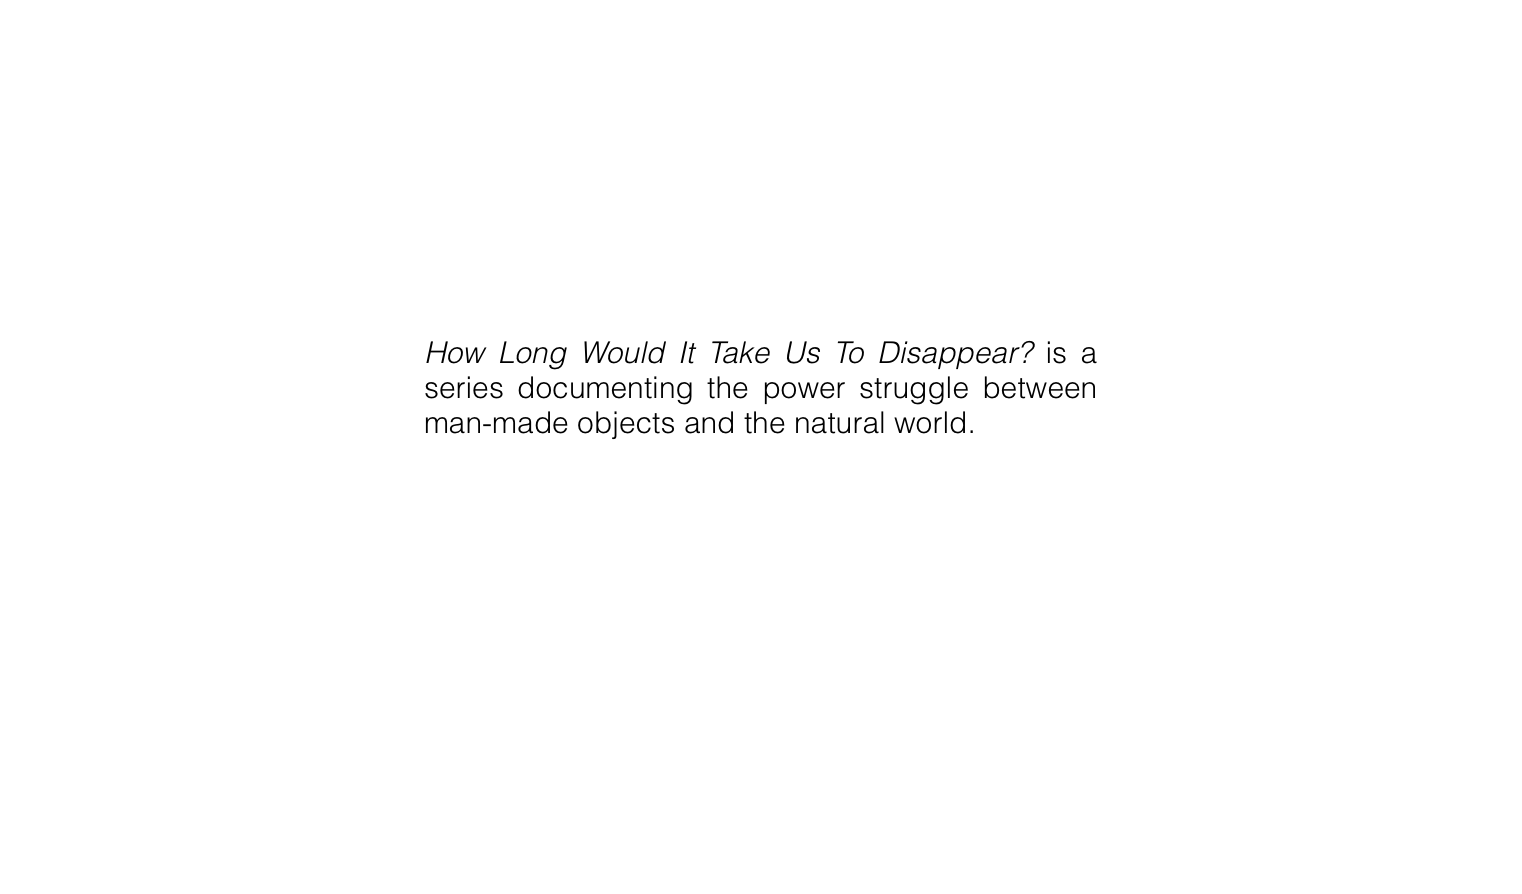 How Long Would It Take Us to Disappear? Text.png